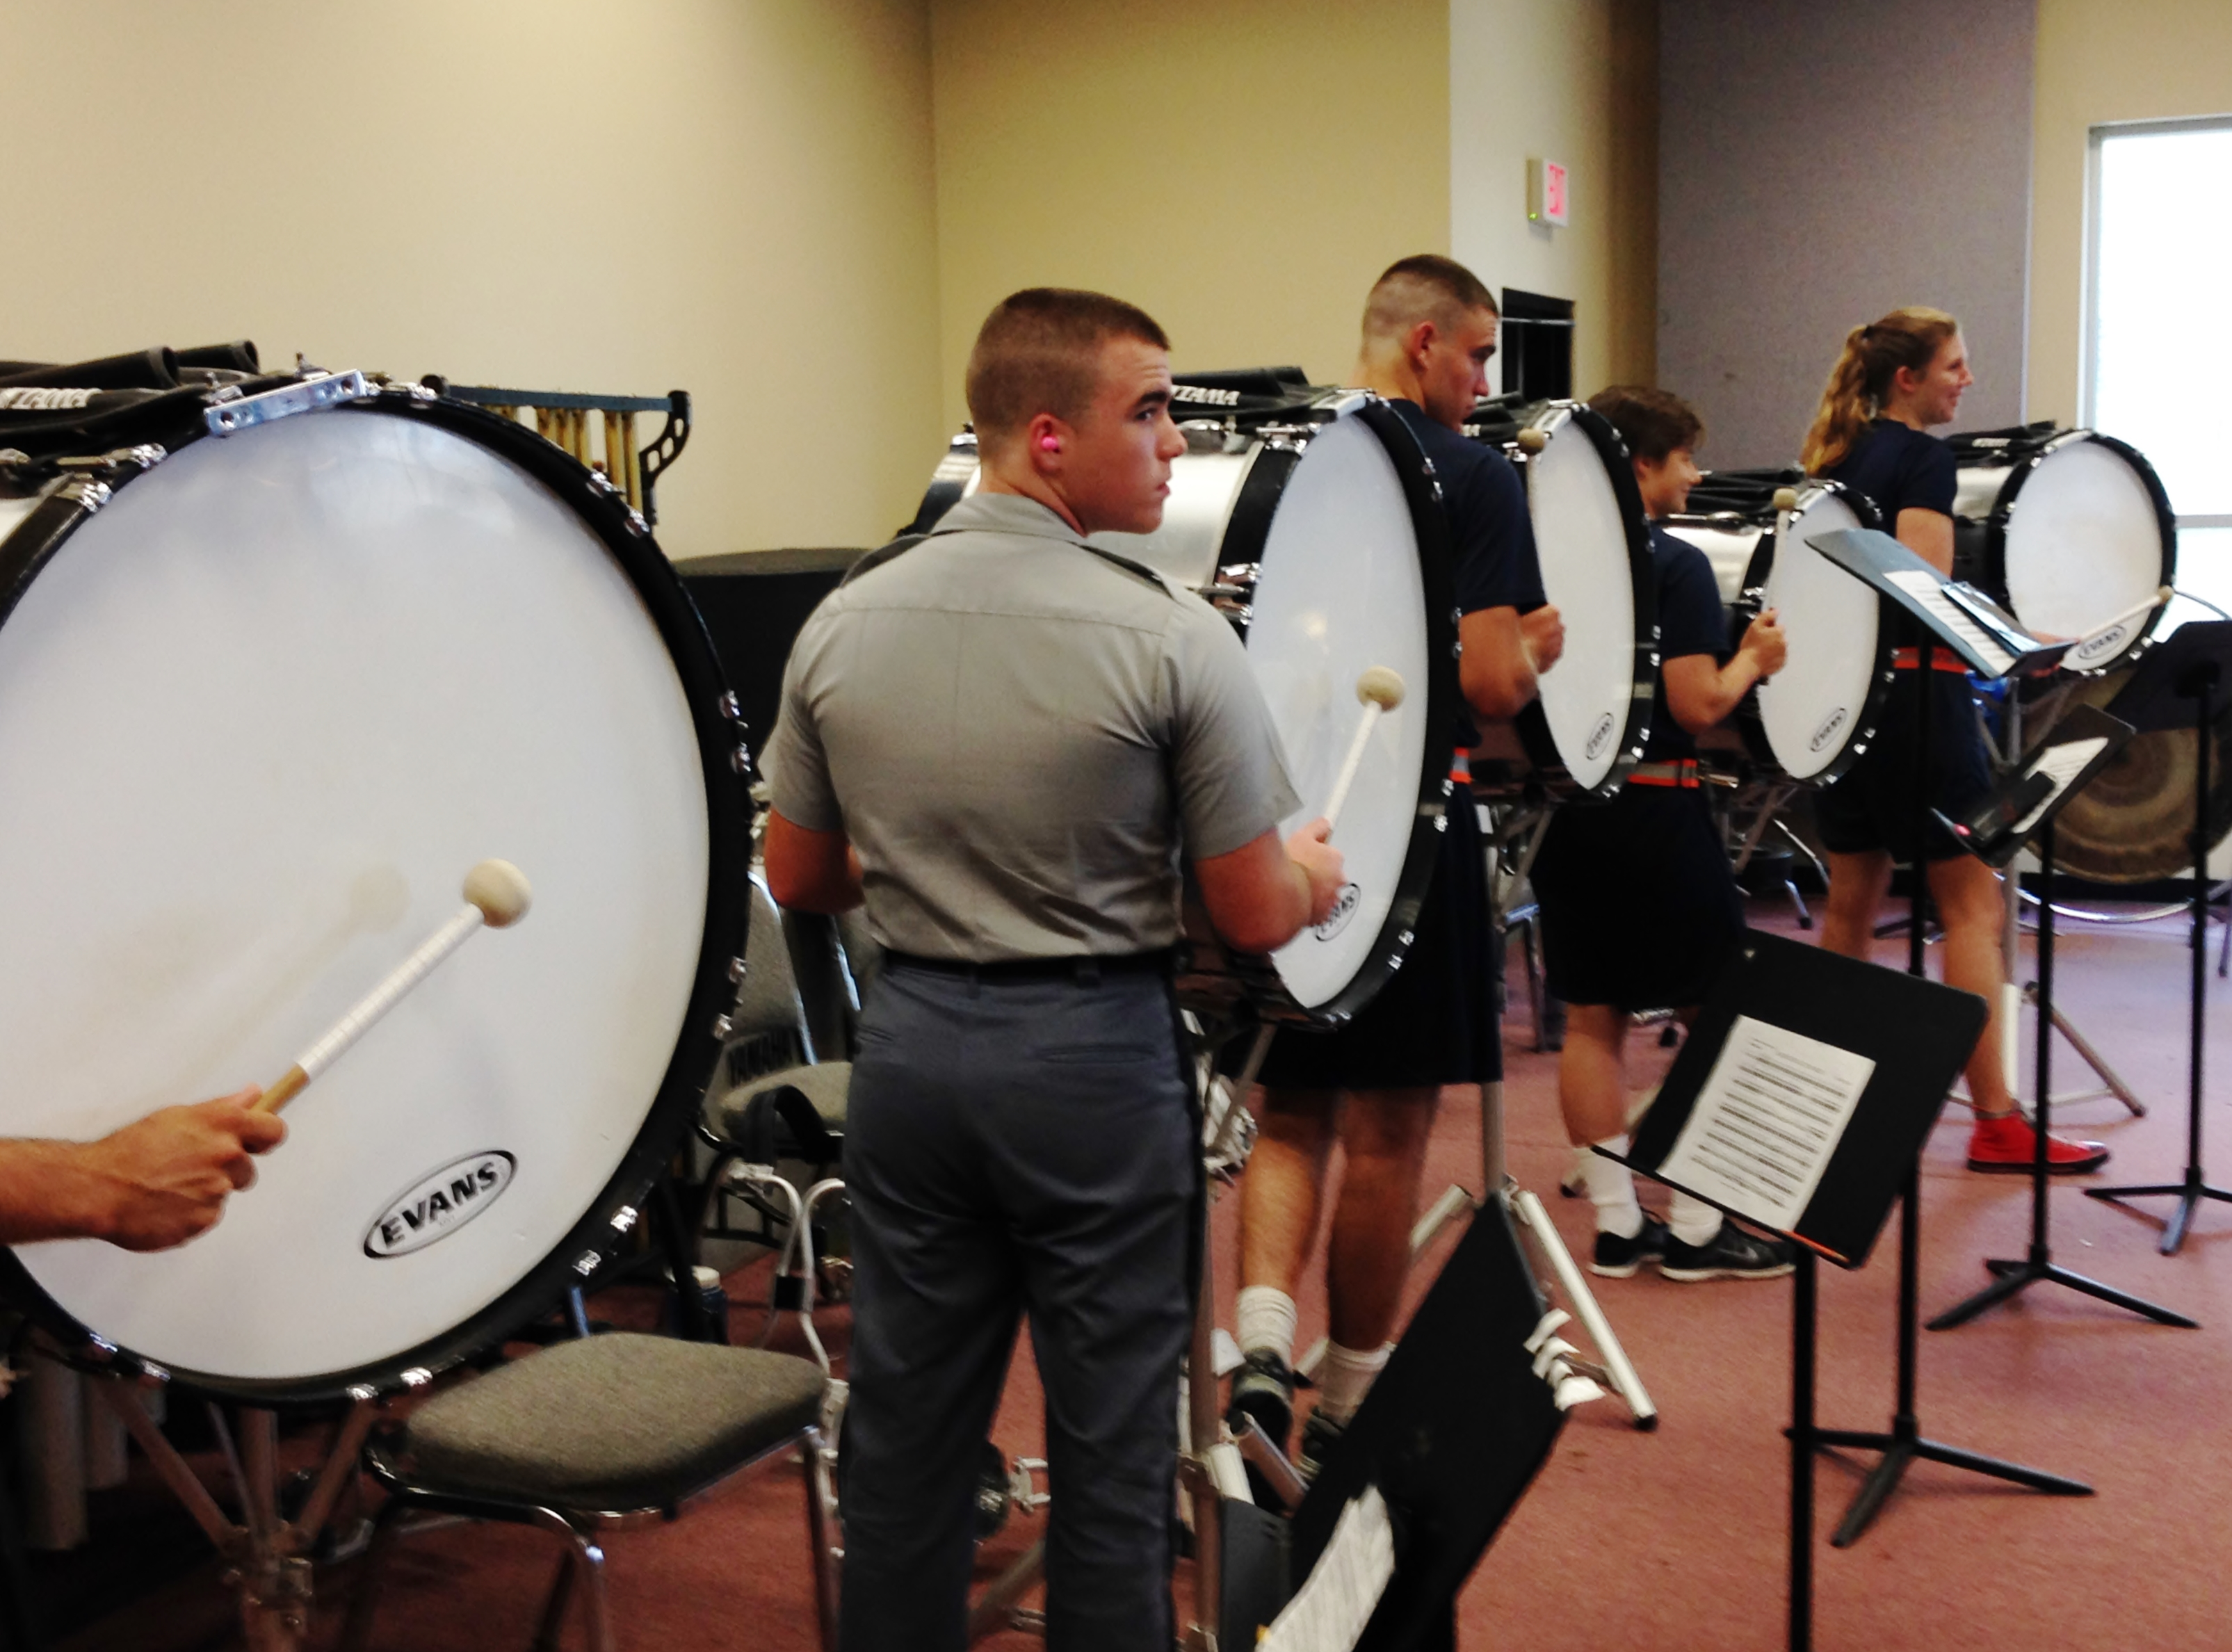 The-Citadel-Bass-Drums-Practicing-Pipes-Band-2015